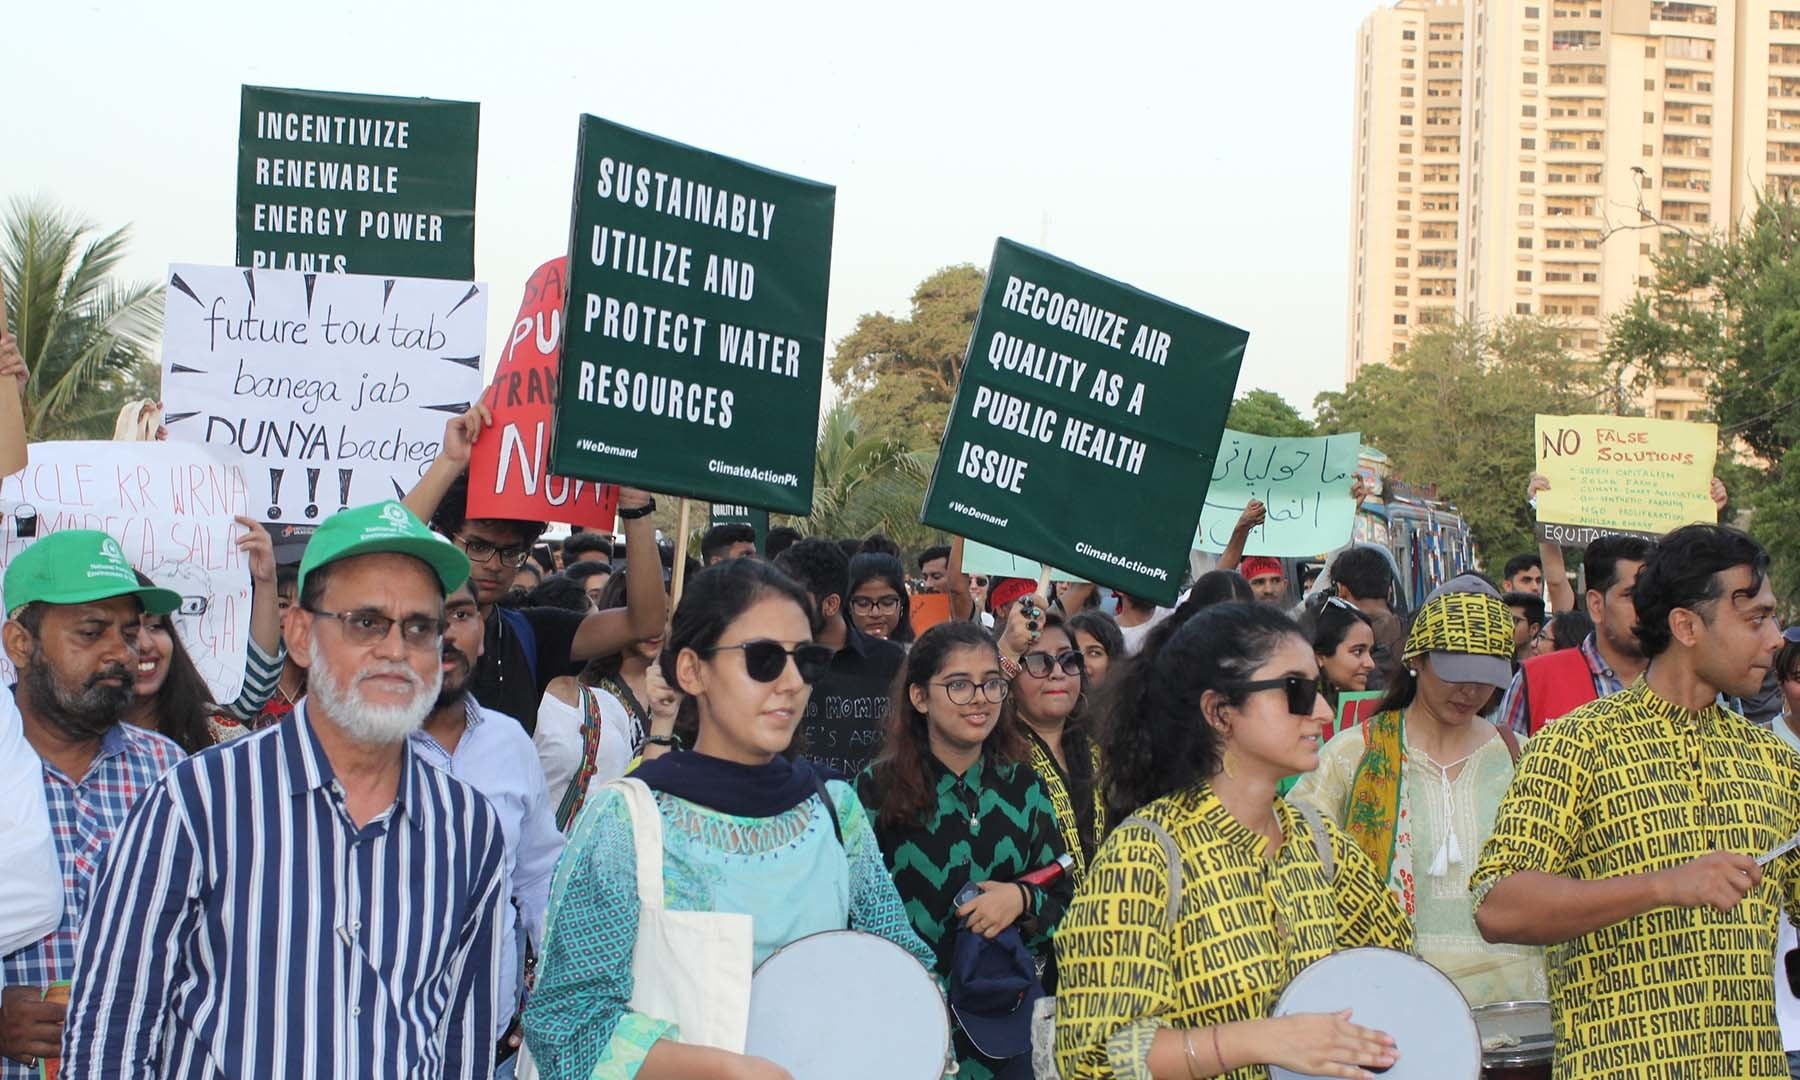 Attendees at the climate march in Karachi. — Photo by Kamran Nafees